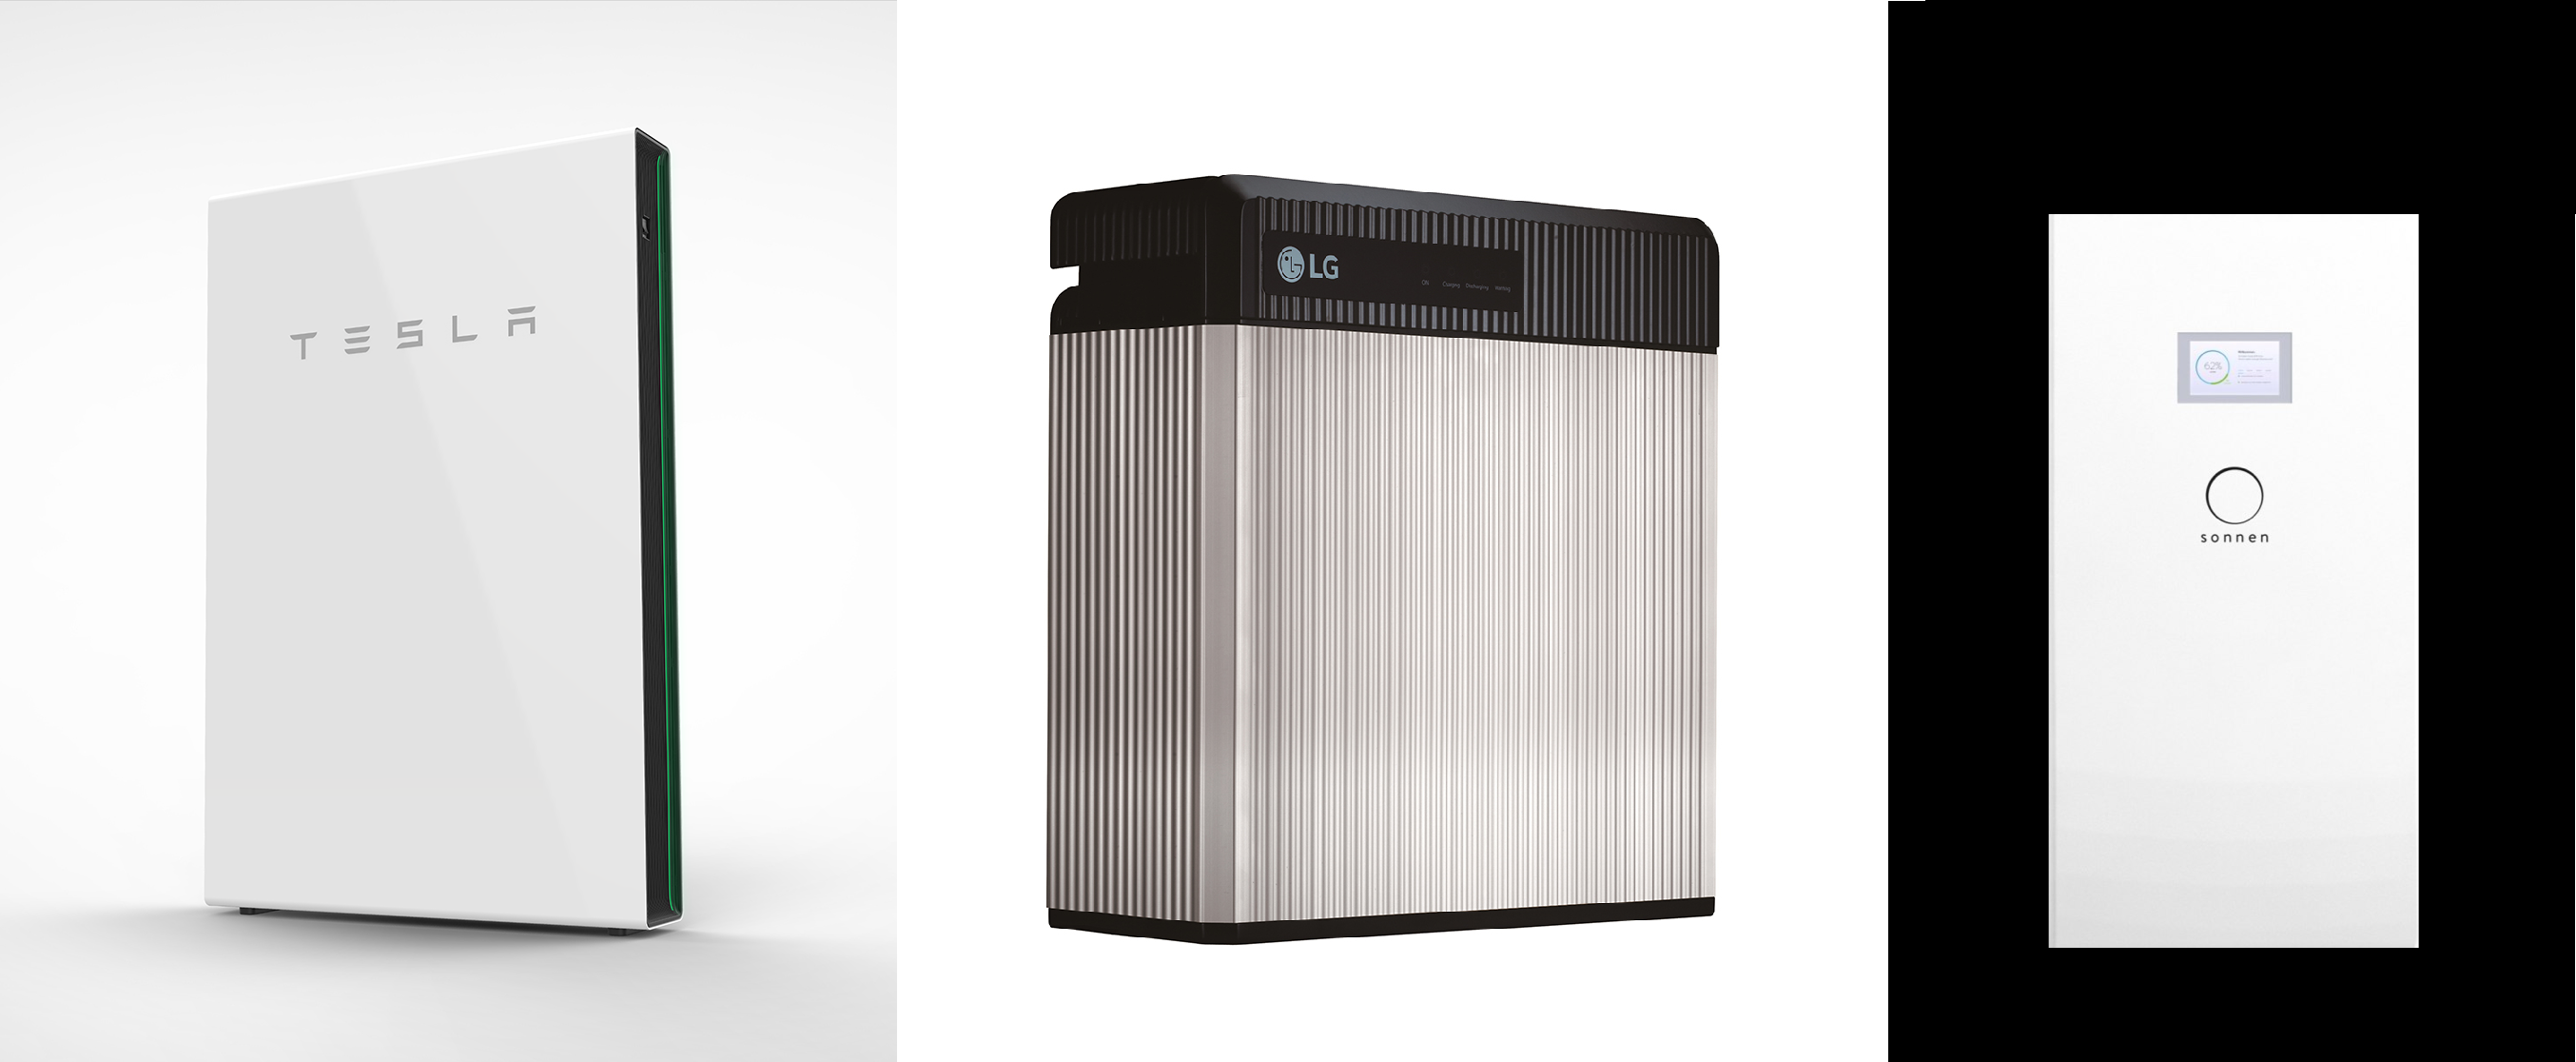 Tesla Powerwall 2 Has No Competition Comparison With Lg